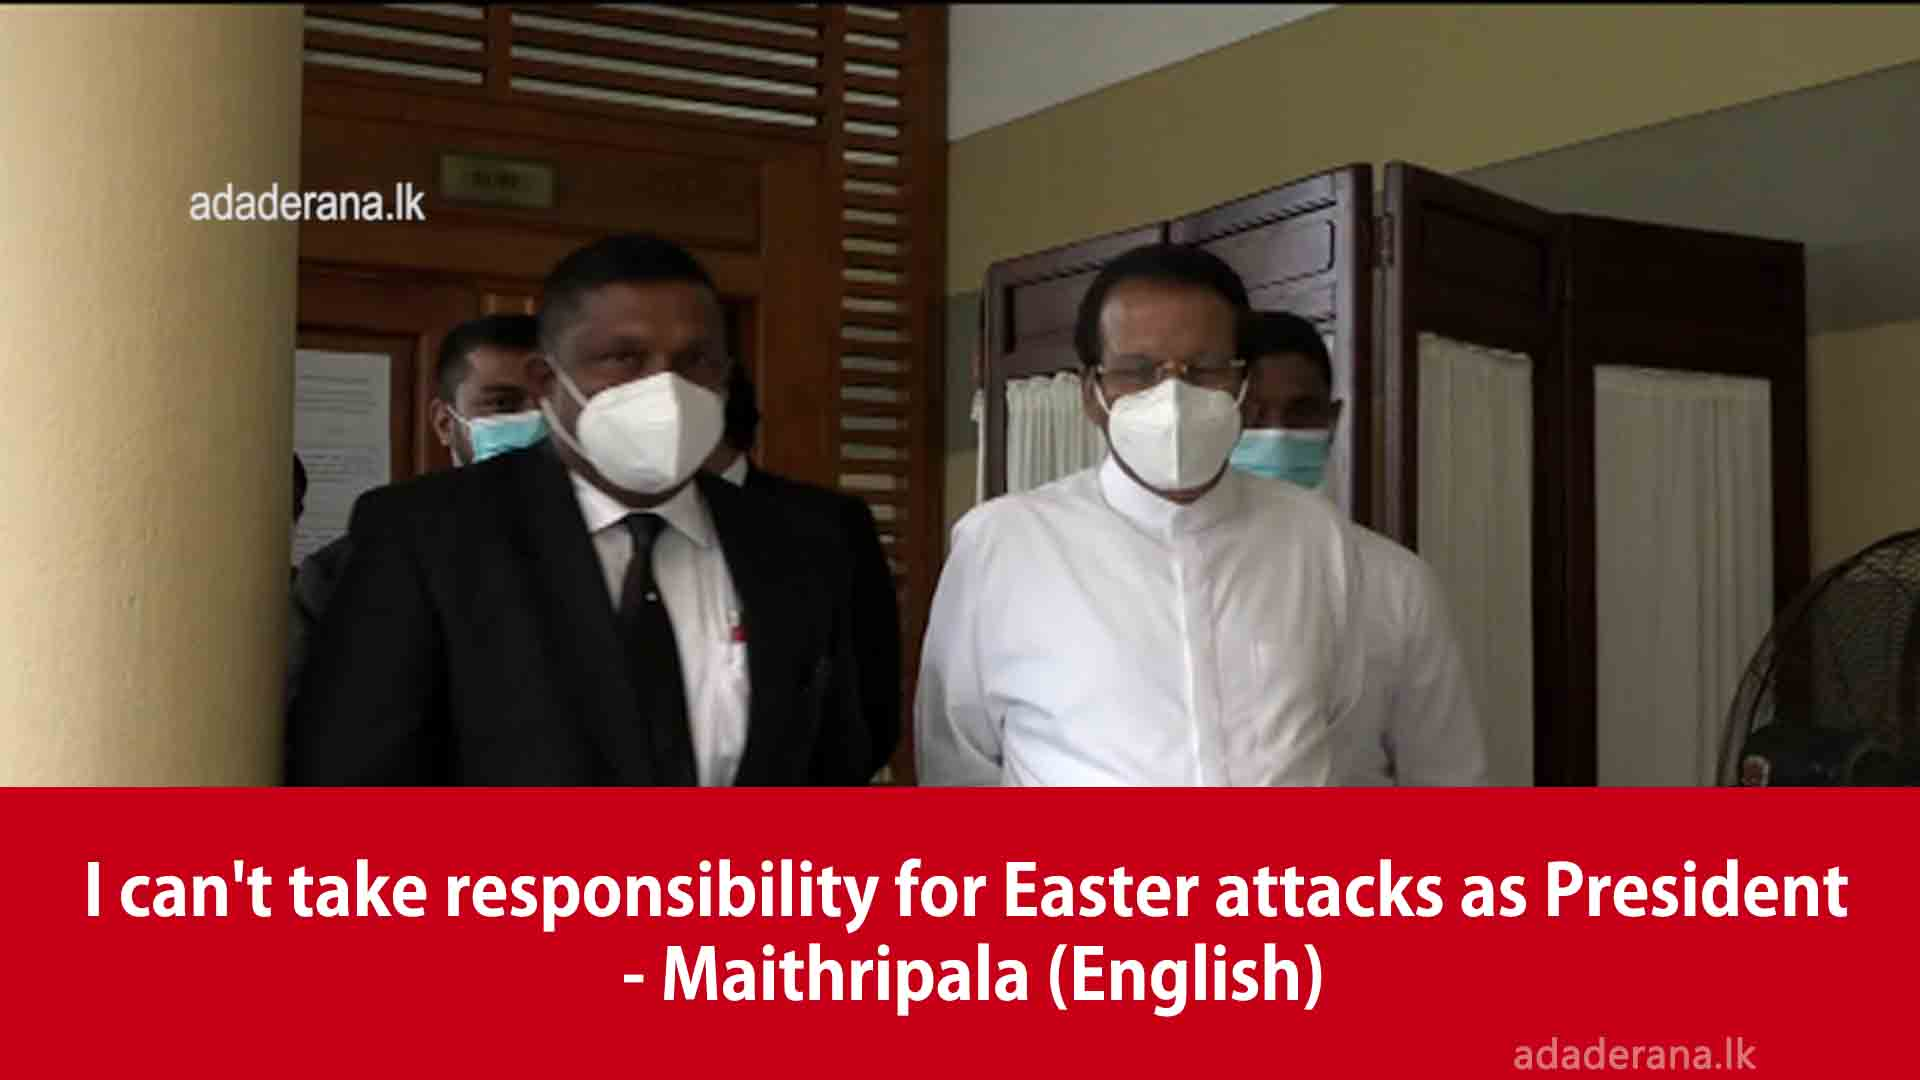 I can't take responsibility for Easter attacks as President - Maithripala (English)